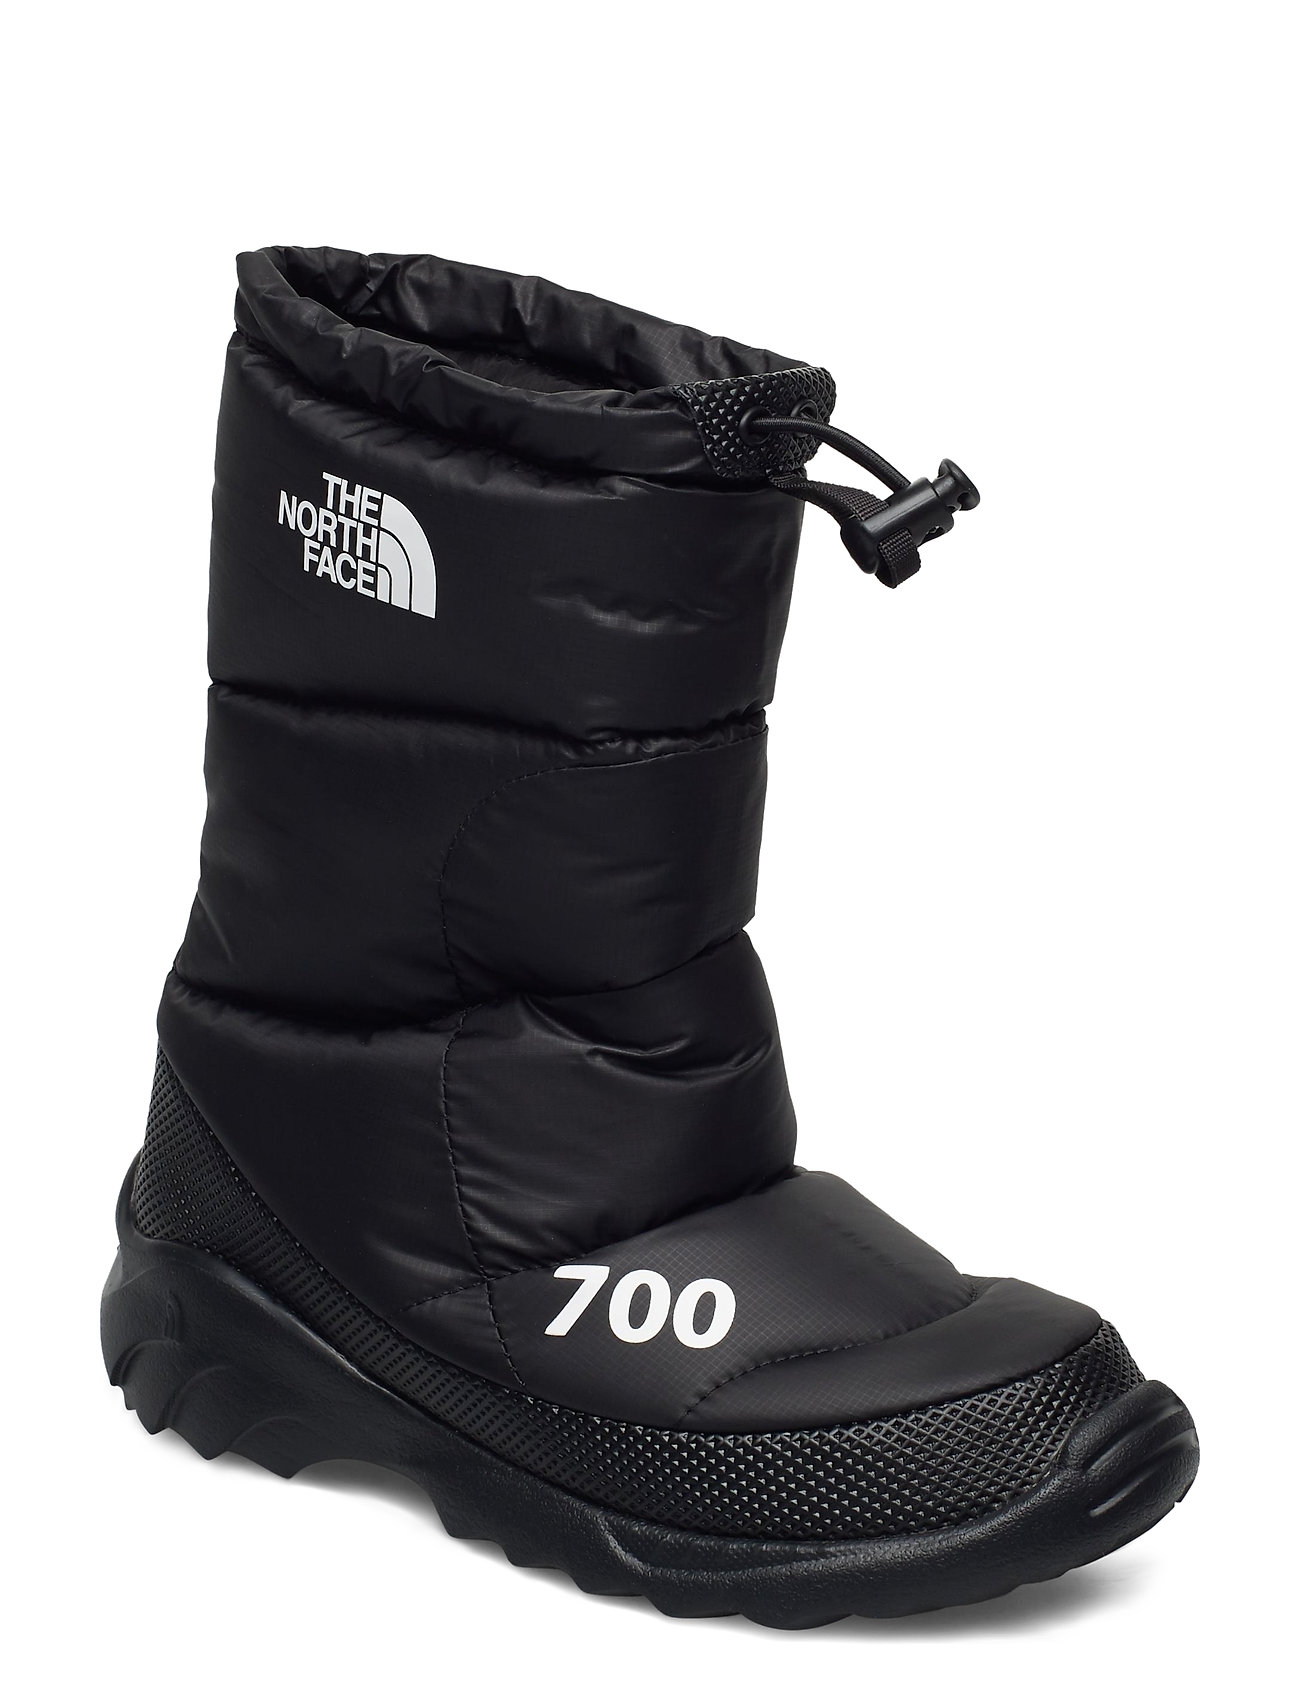 Image of W Nuptse Bootie 700 Shoes Boots Ankle Boots Ankle Boot - Flat Sort The North Face (3462698351)